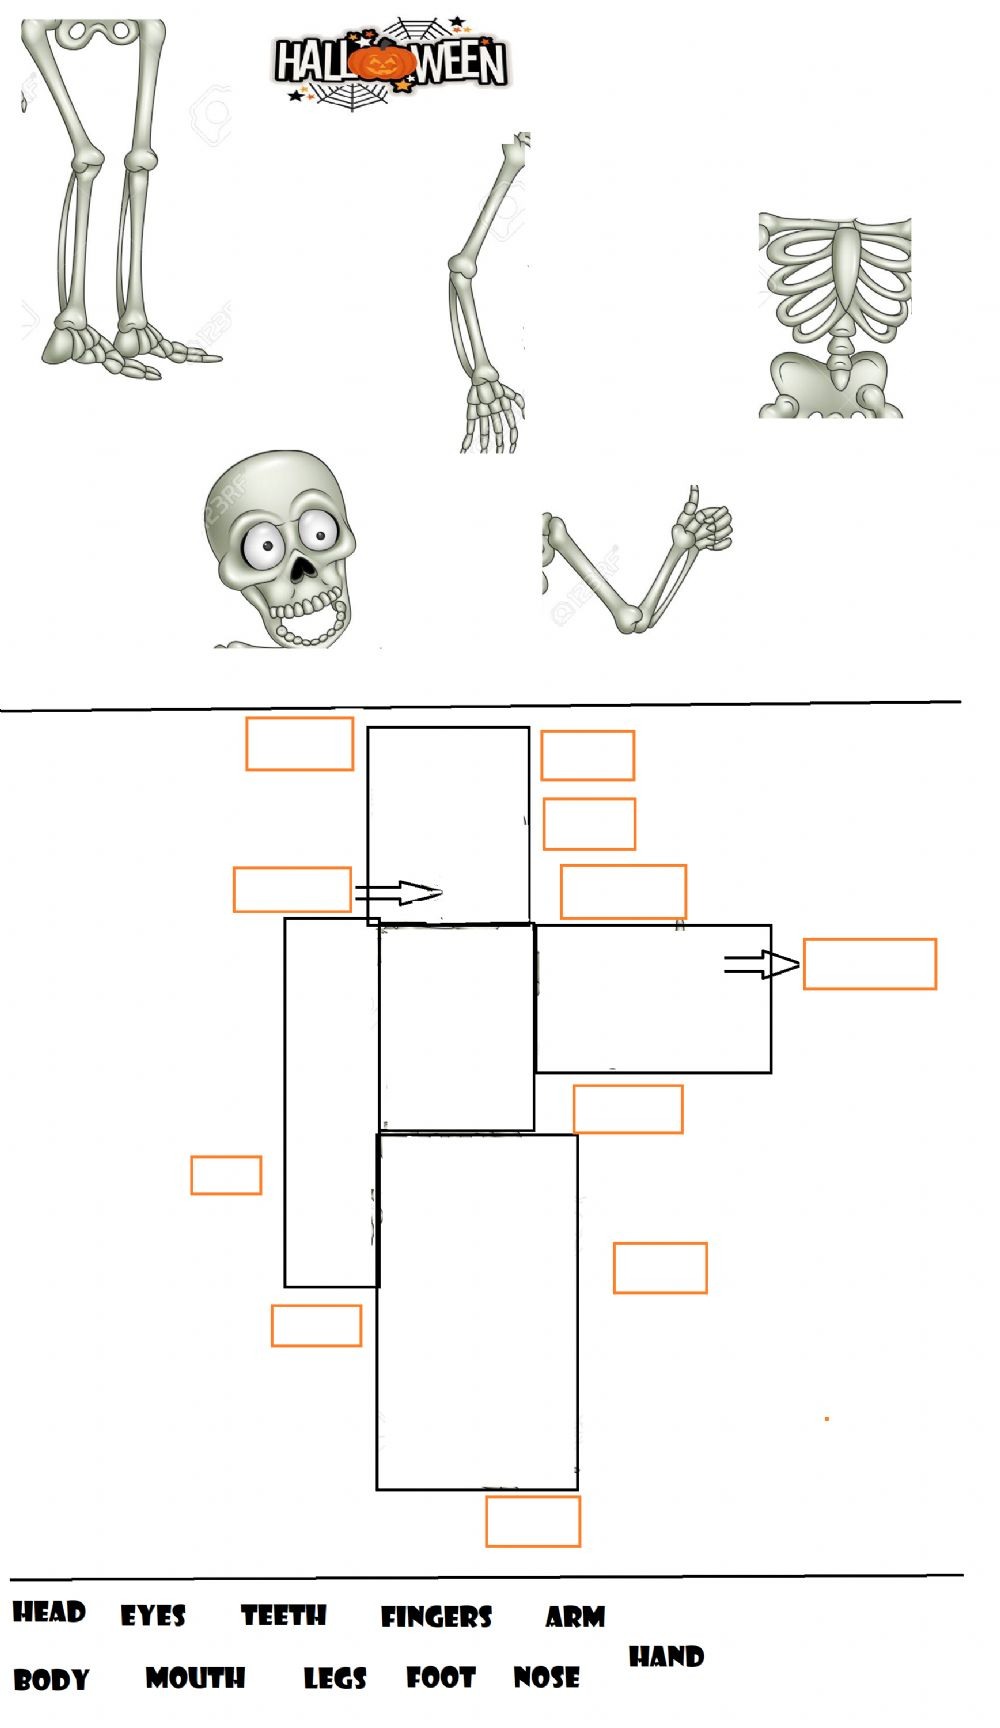 Parts Of The Body - Halloween! Worksheet